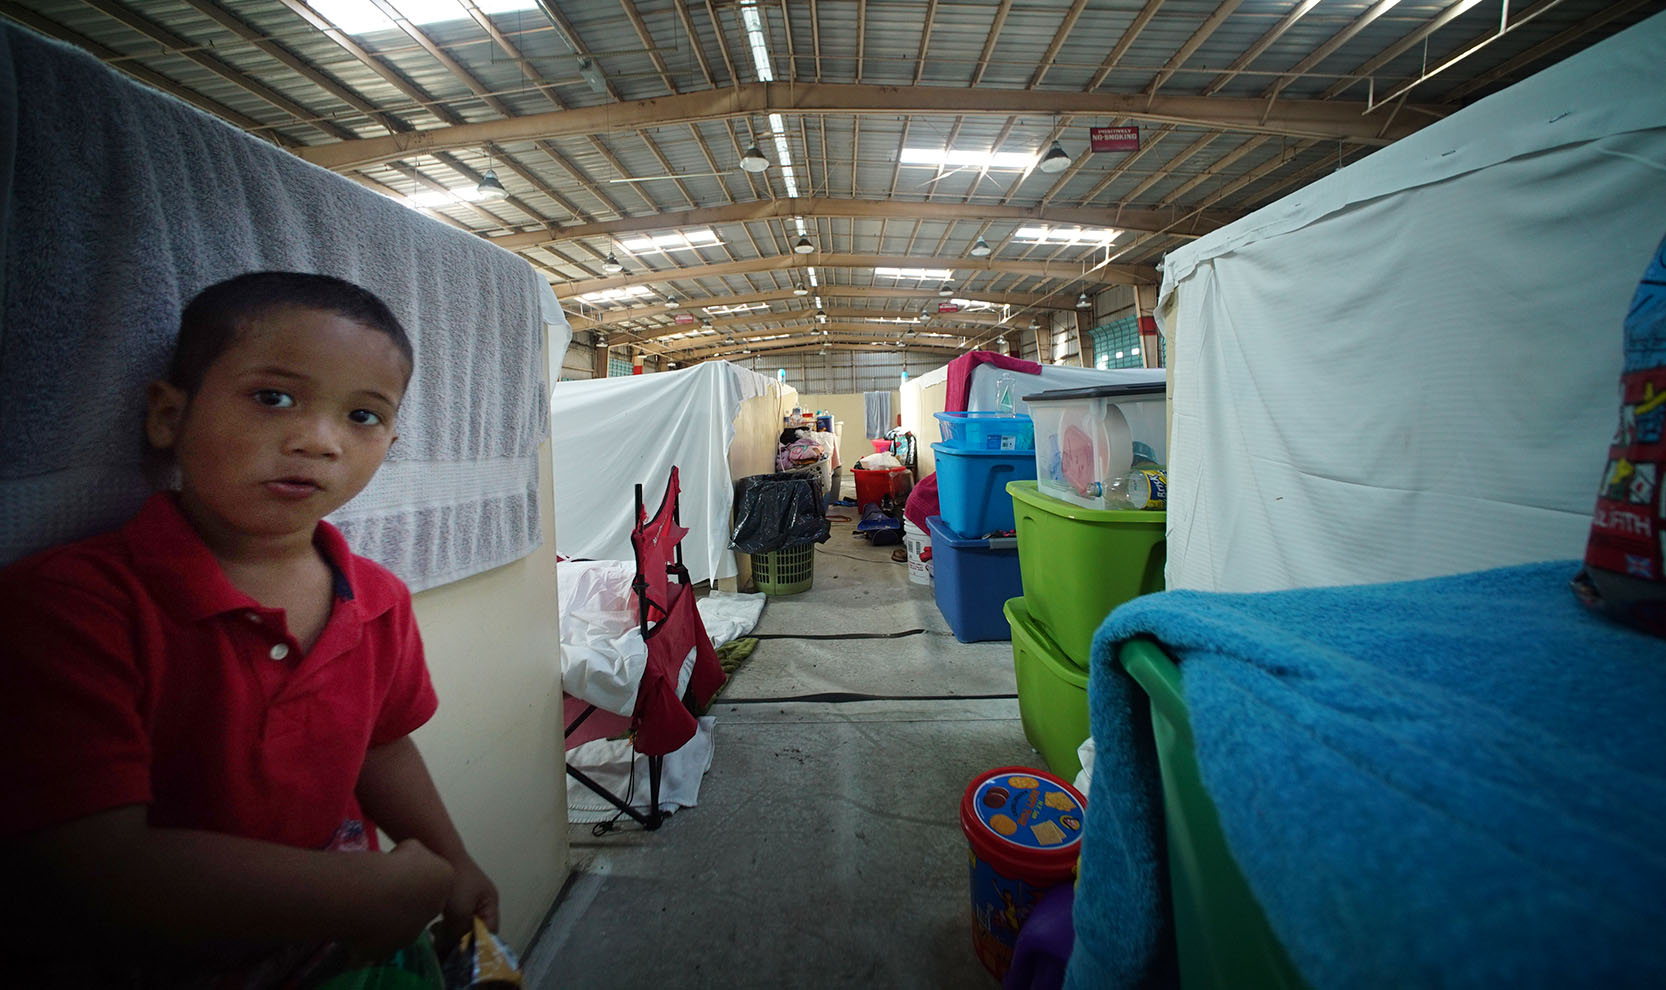 <p>SomeMicronesians have moved into homeless shelters, including the Next Step facility near downtown Honolulu.</p>